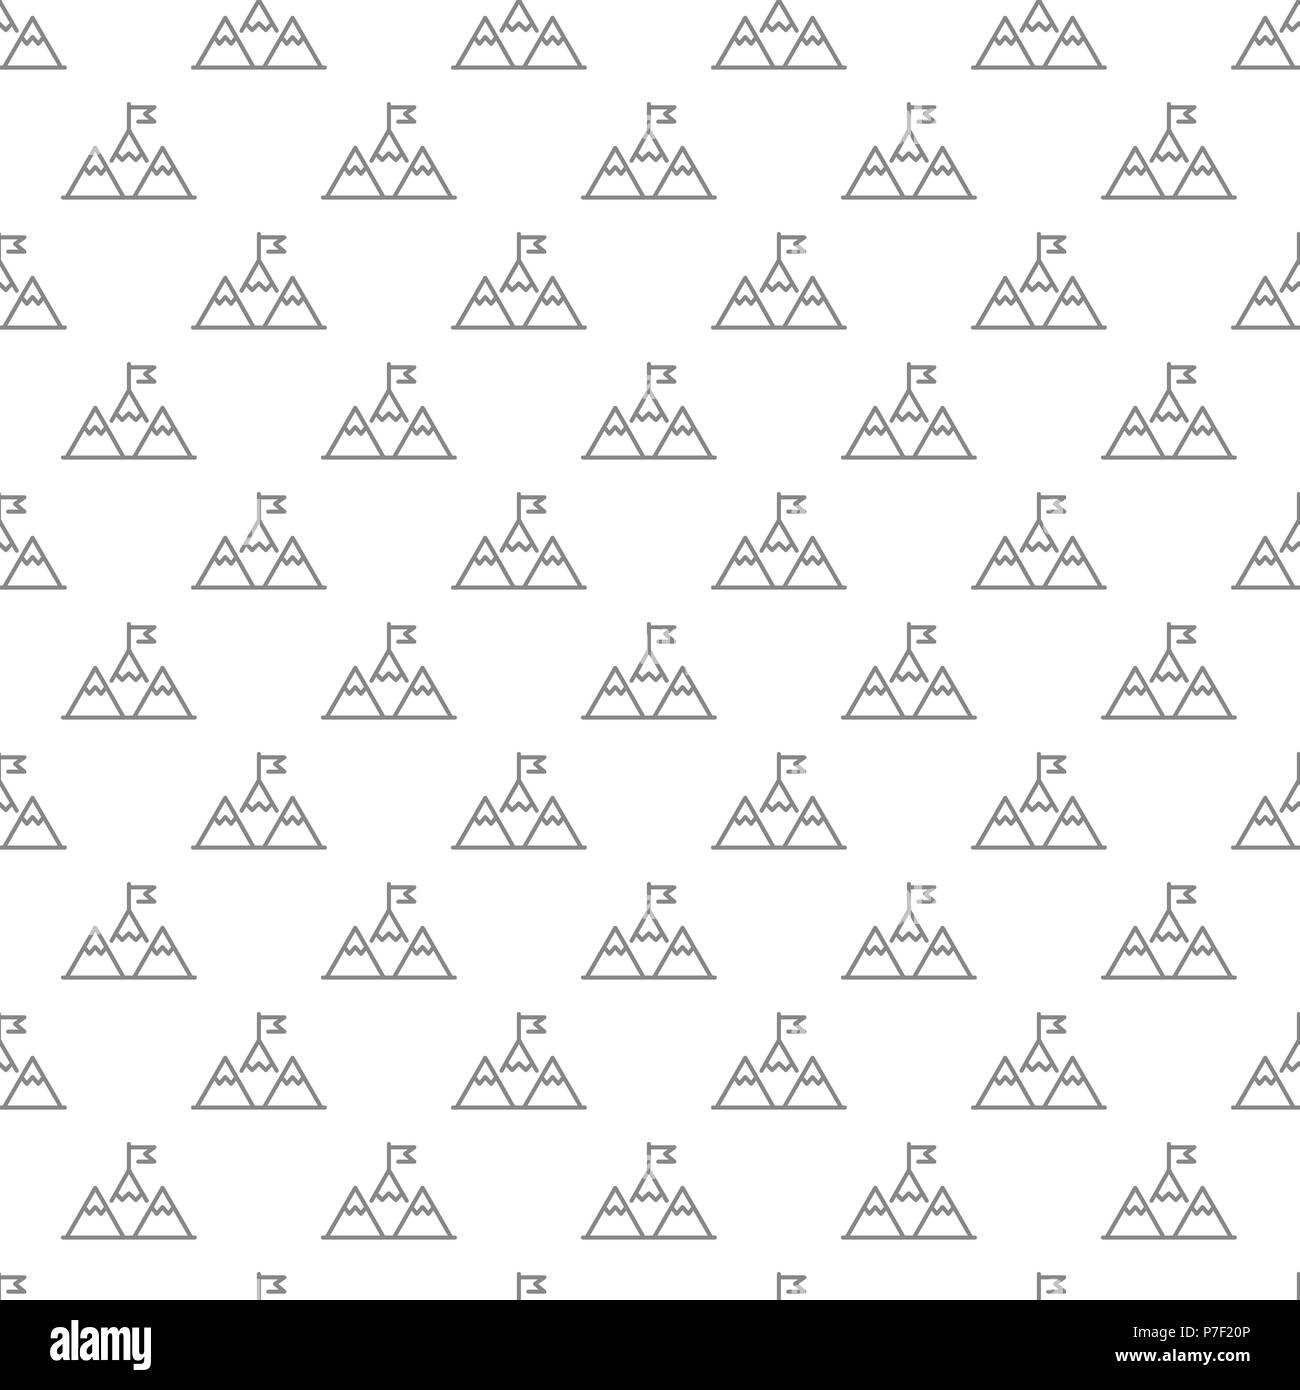 Simple Mountain Peak With Flag Or Leadership Seamless Pattern With